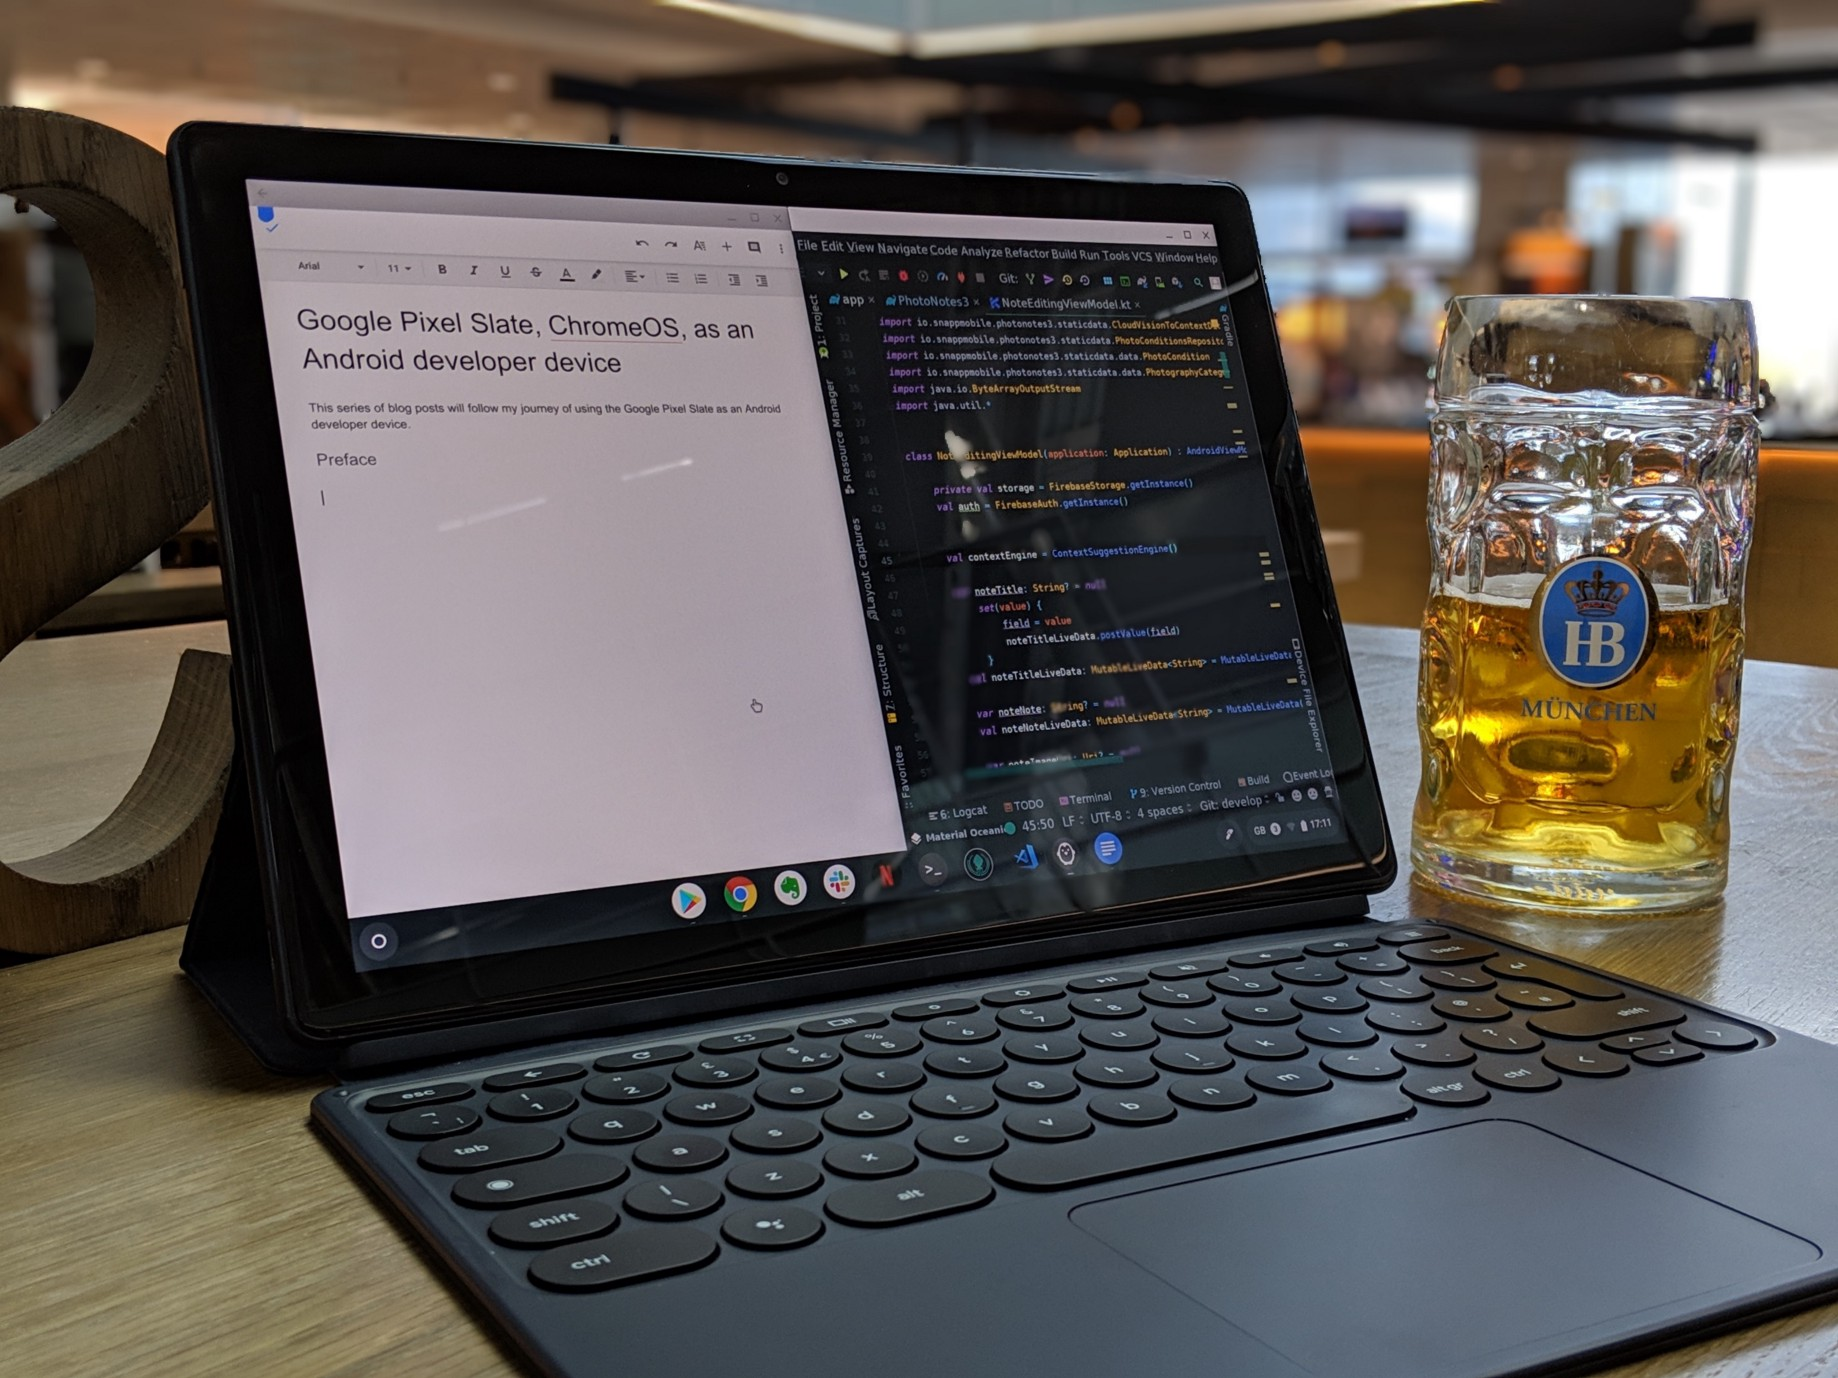 Google Pixel Slate, ChromeOS, as an Android developer device